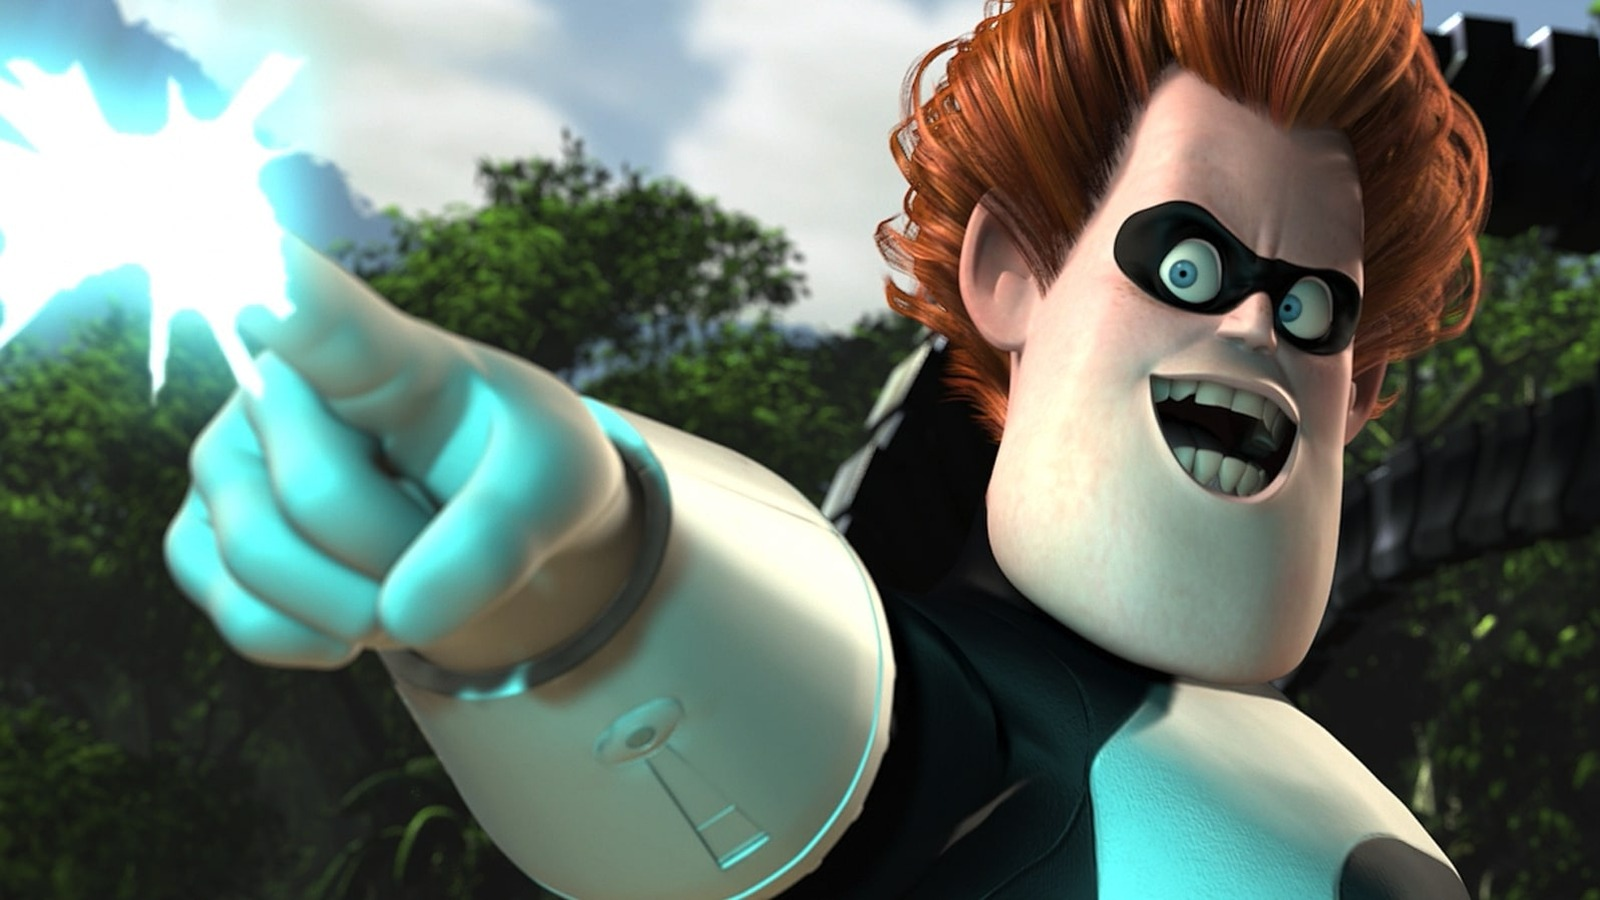 Why the villain of The Incredibles wasn't actually Syndrome